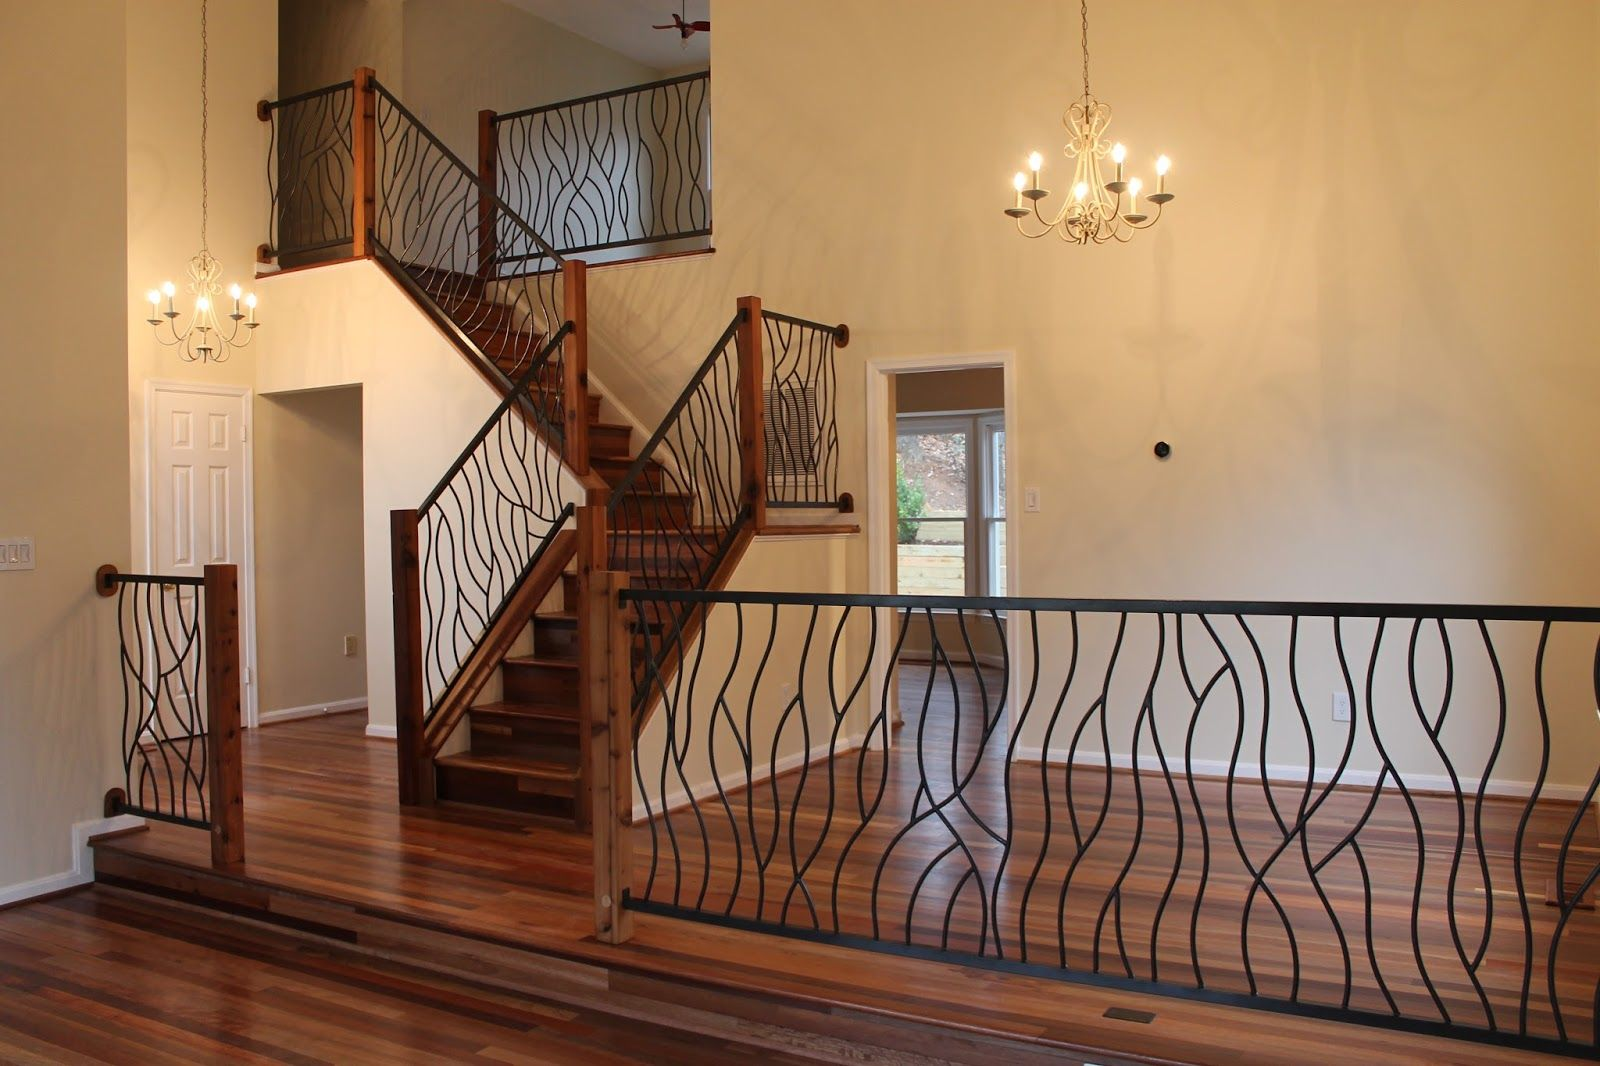 15 Wrought Iron Balusters Design Ideas | Alexander Gruenewald